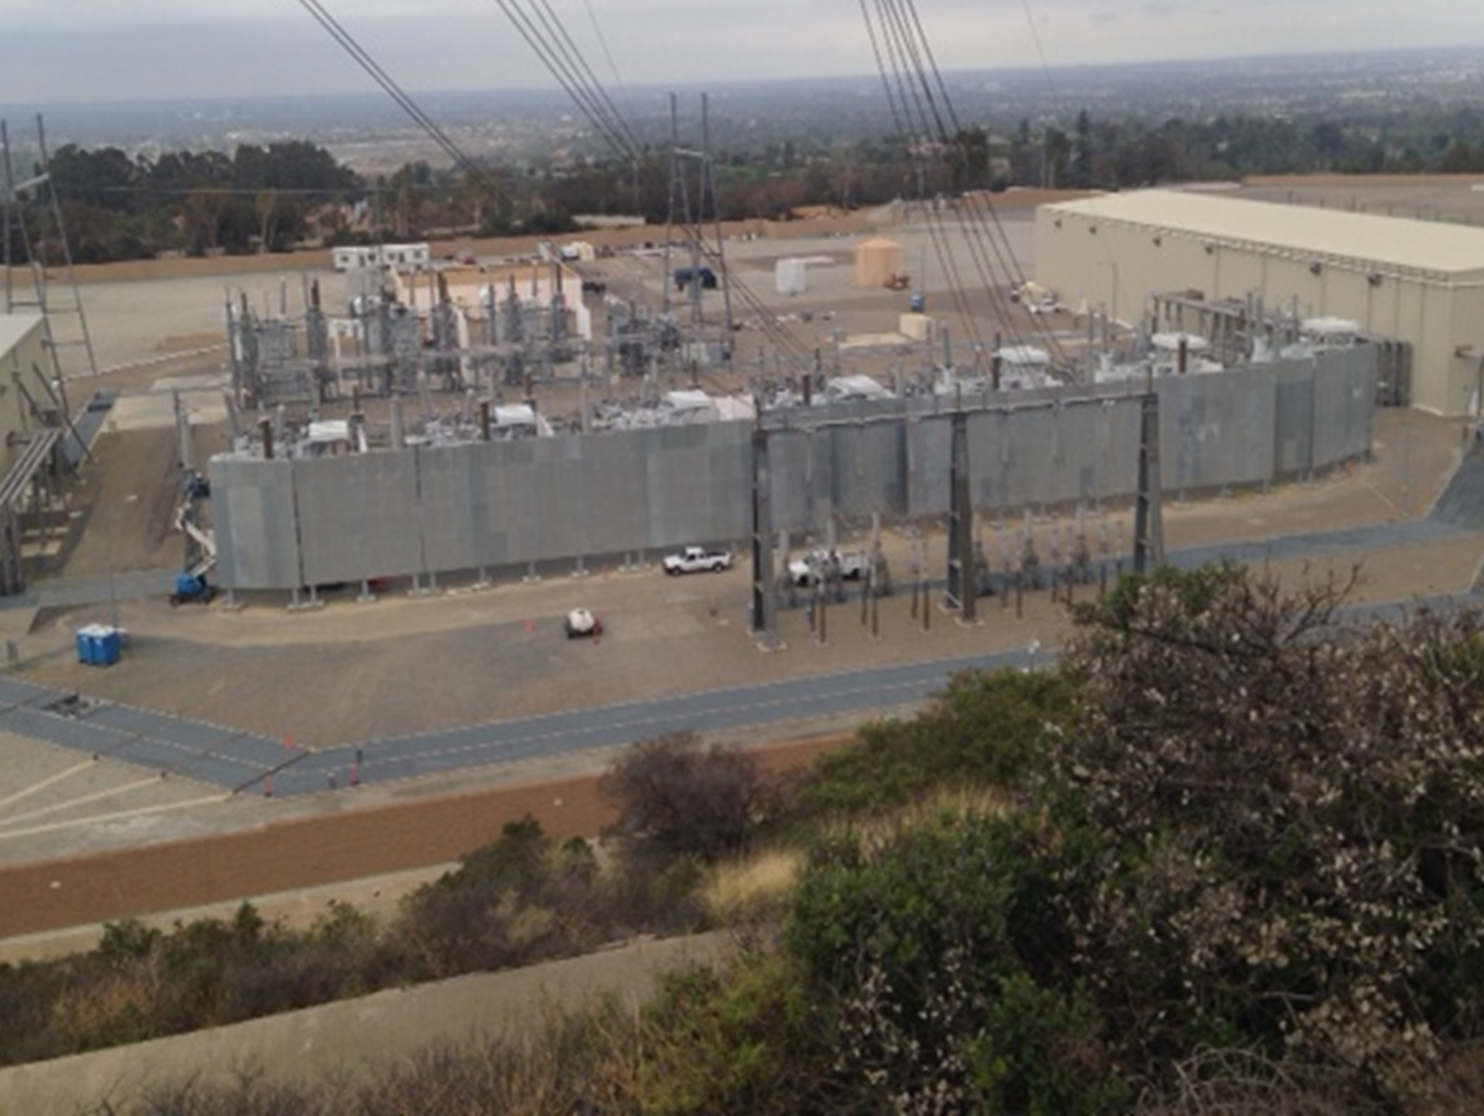 Large Project At US Substation- Providing Power To Large Portion Of California